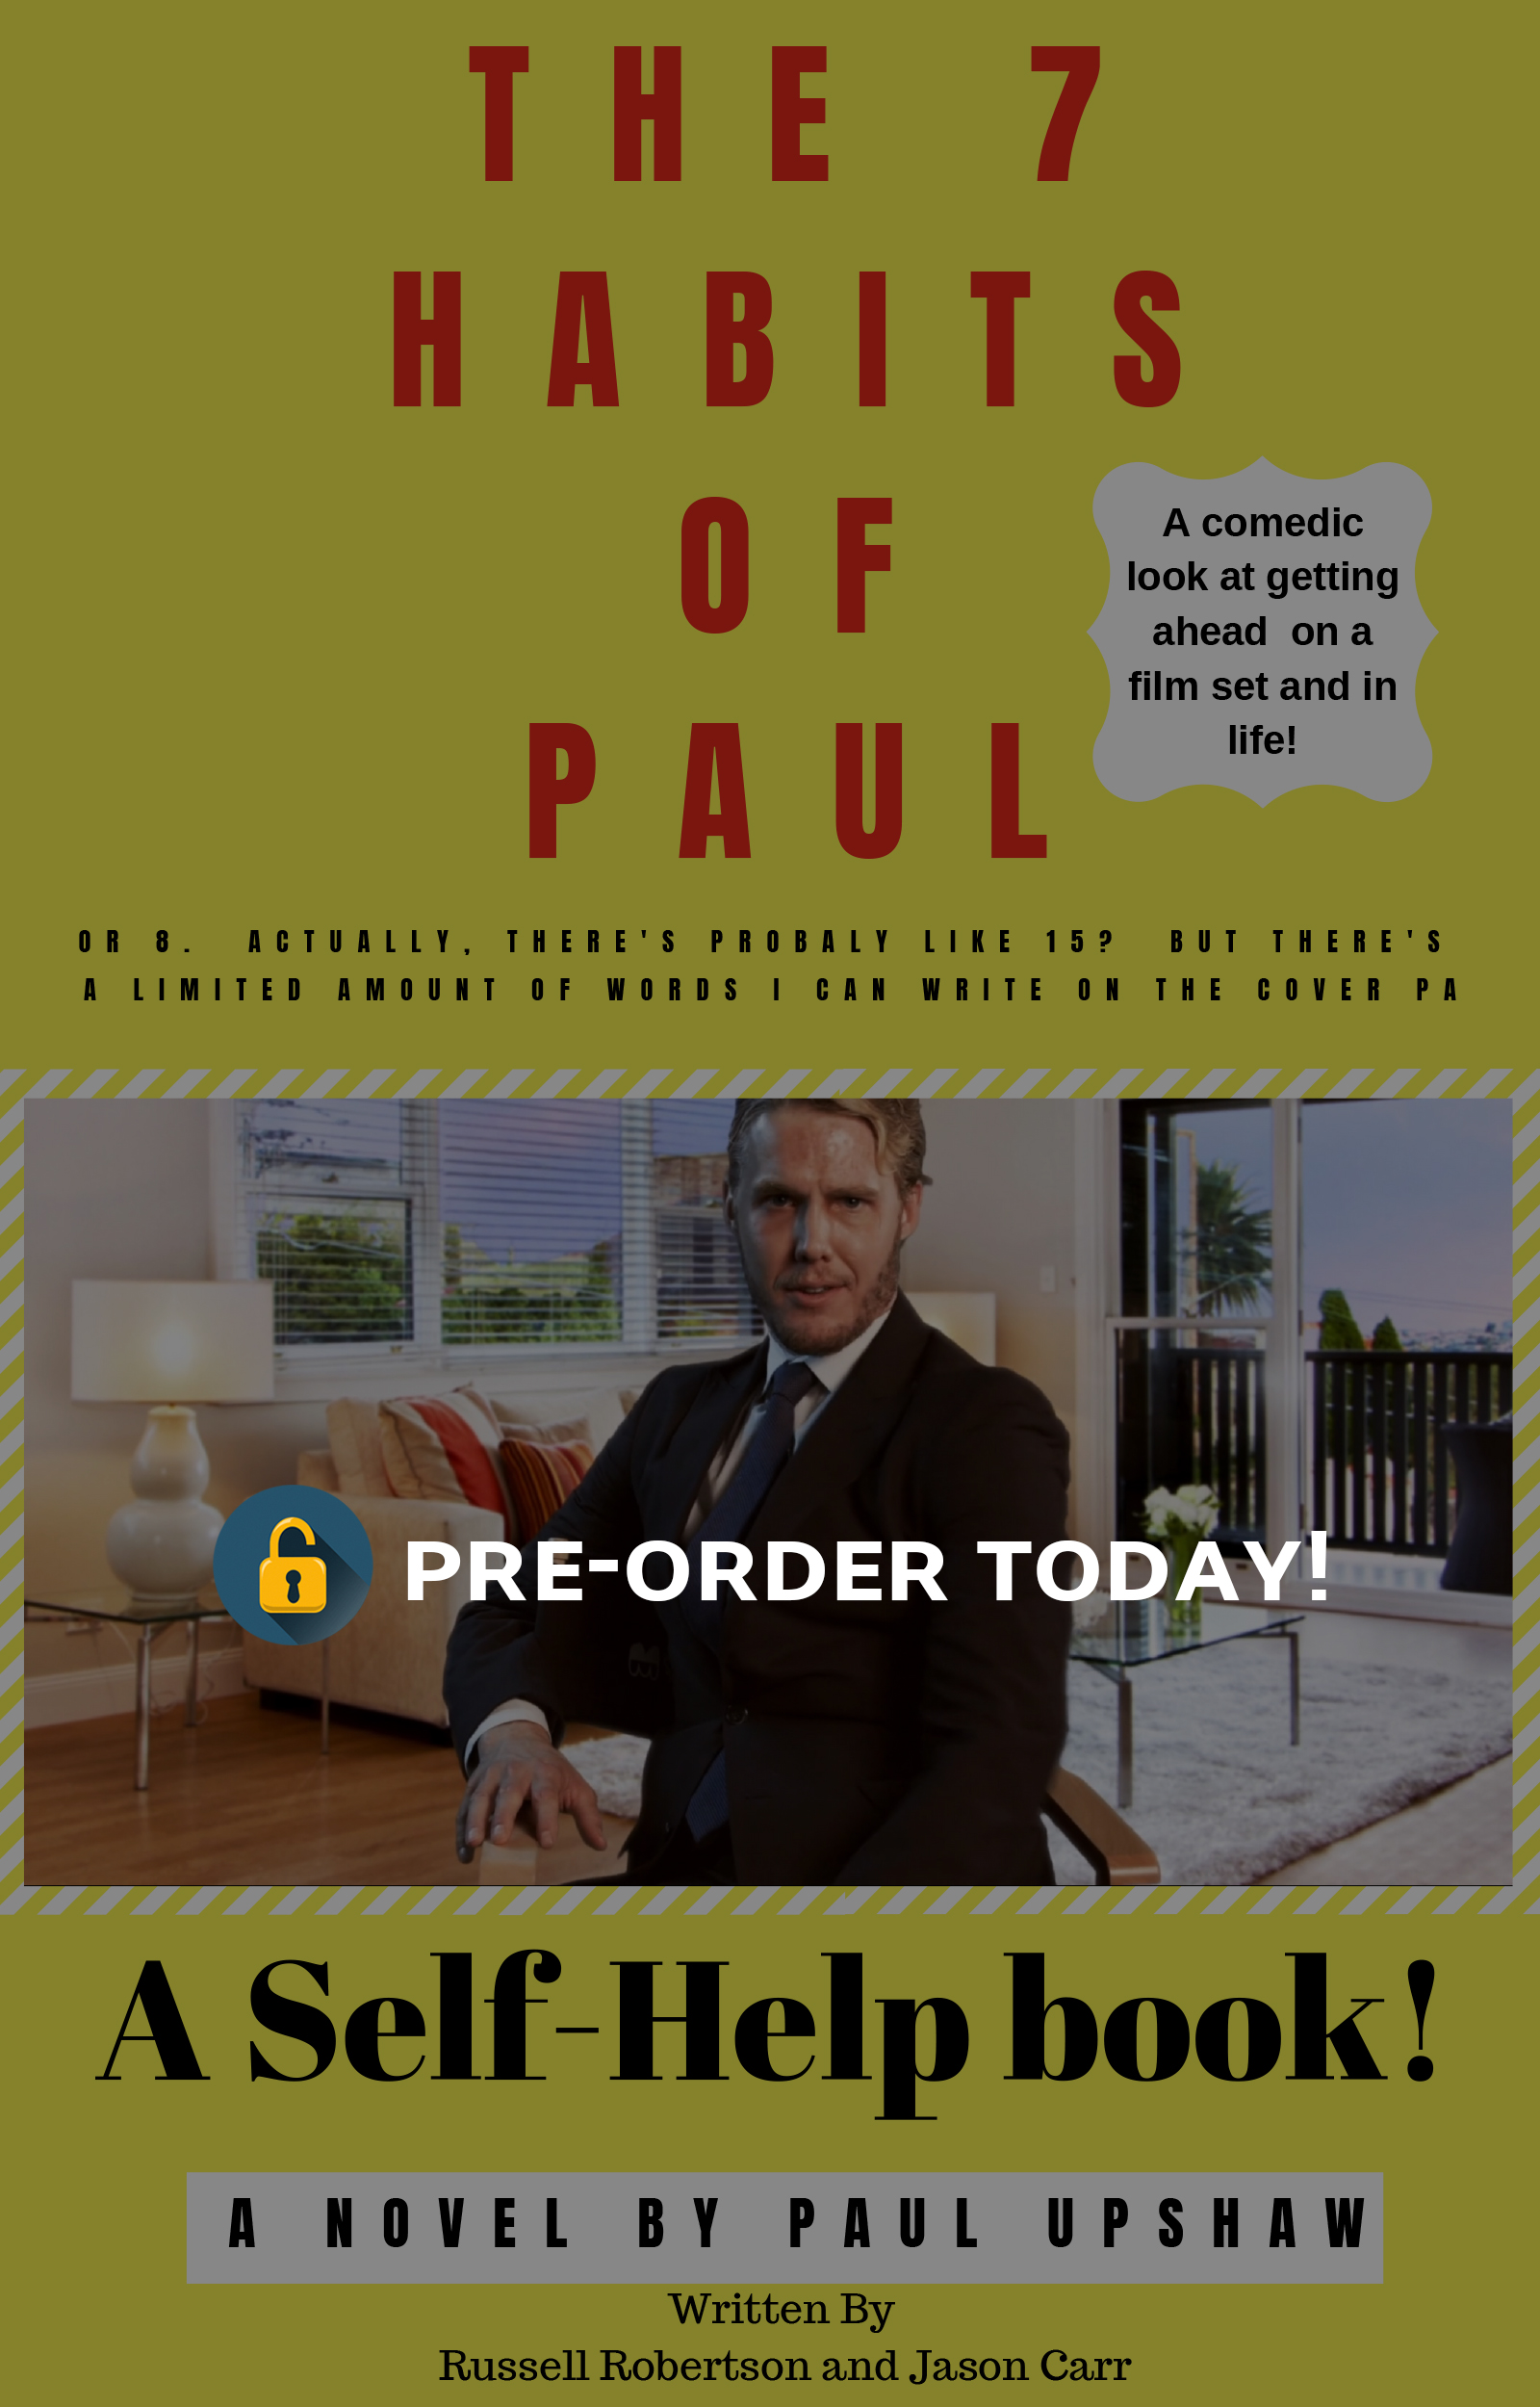 7 Habits Of Paul - In this gem of a book, based on going up the ladder in Paul's life on set, Paul gives us clear and precise advice on everyday choices that will help us get ahead in life and on set.Like, How I got to set 5 hours early and then slept in the wardrobe trailer without getting caught.Some sample chapters include:Chapter 7 How to make something positive out of having coffee thrown in your face. And then get more coffee.Chapter 10 What to do if you accidentally get fired. And how to create a completely new identity from the wardrobe and make up trailer.Chapter 3 When the Assistant Director has a drug problem and you move him in his sleep to a rehab center and what to do when he wakes up before you get there.Chapter 12 What to do when your hair falls out and how finding hair from children's barber's shops might not be the best route.